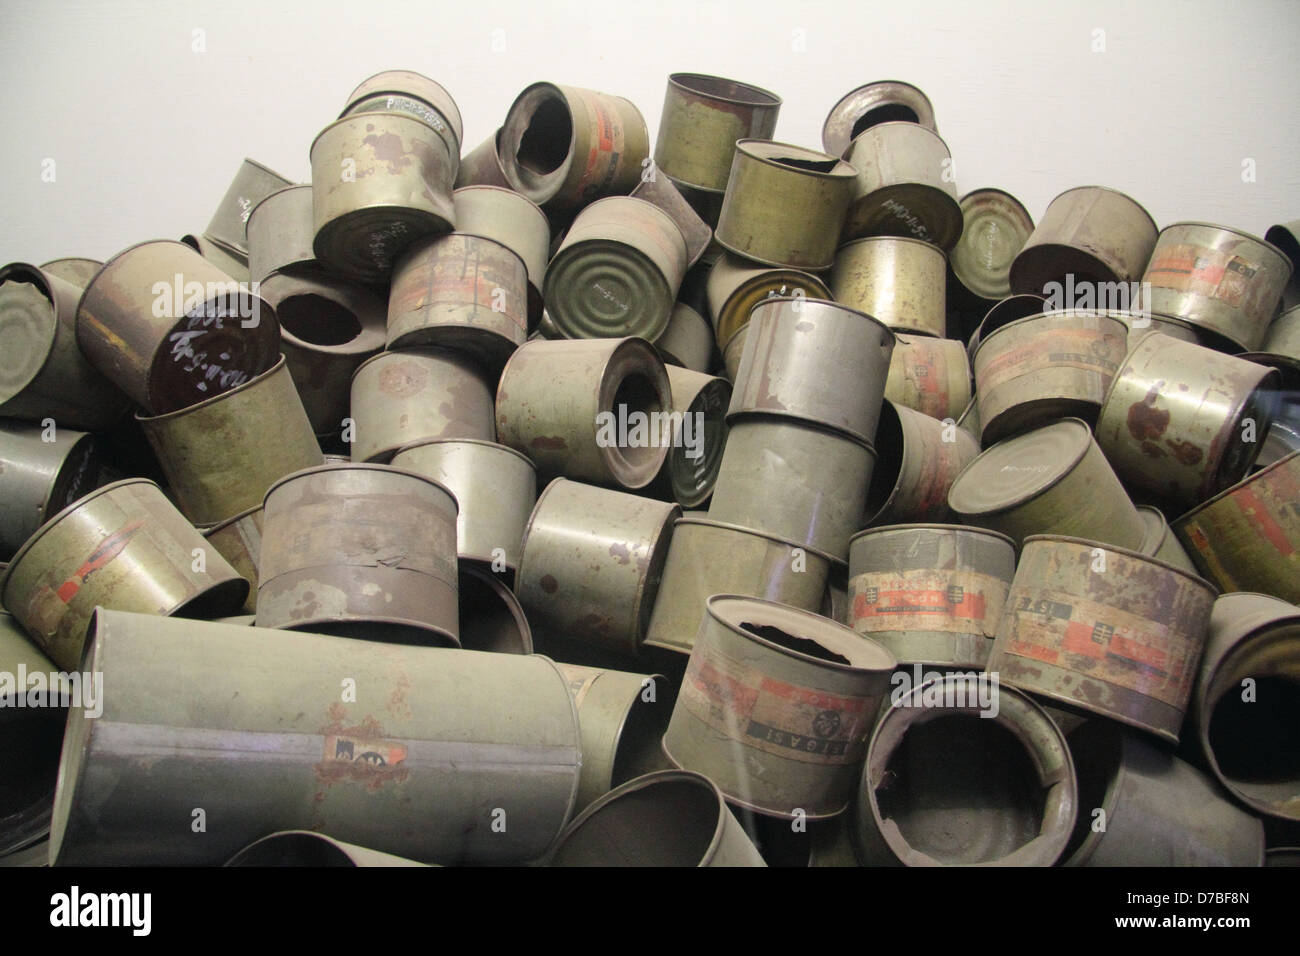 Empty poison gas canisters of Zyklon B that were used by Nazis to poison prisoners at extermination camps - Stock Image